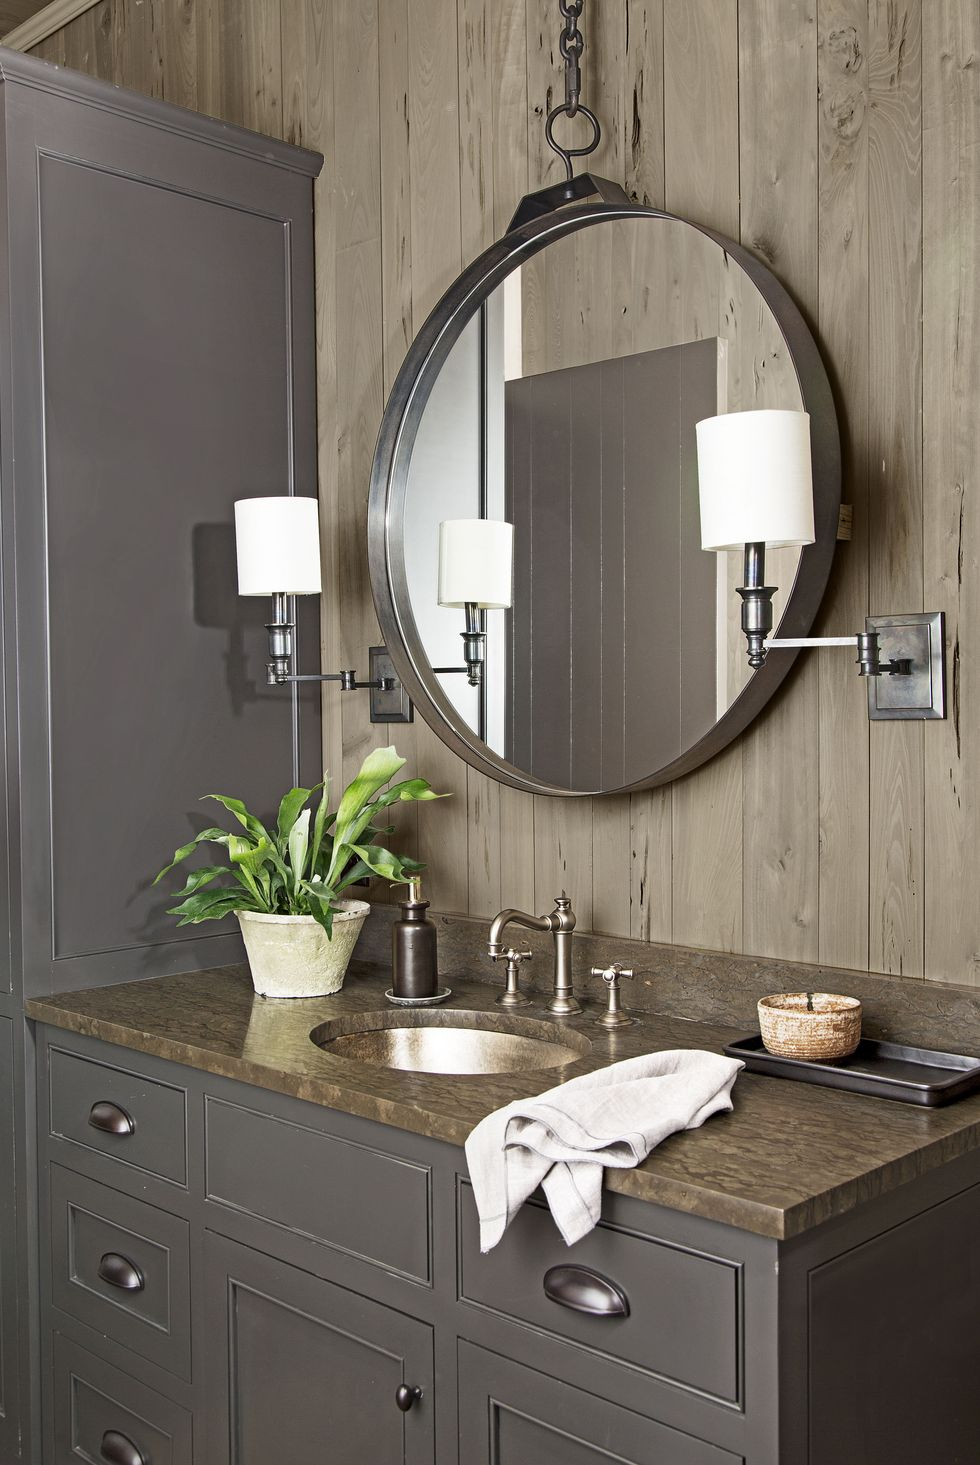 Soapstone can look beautiful in the bathroom, too. Source: Country Living